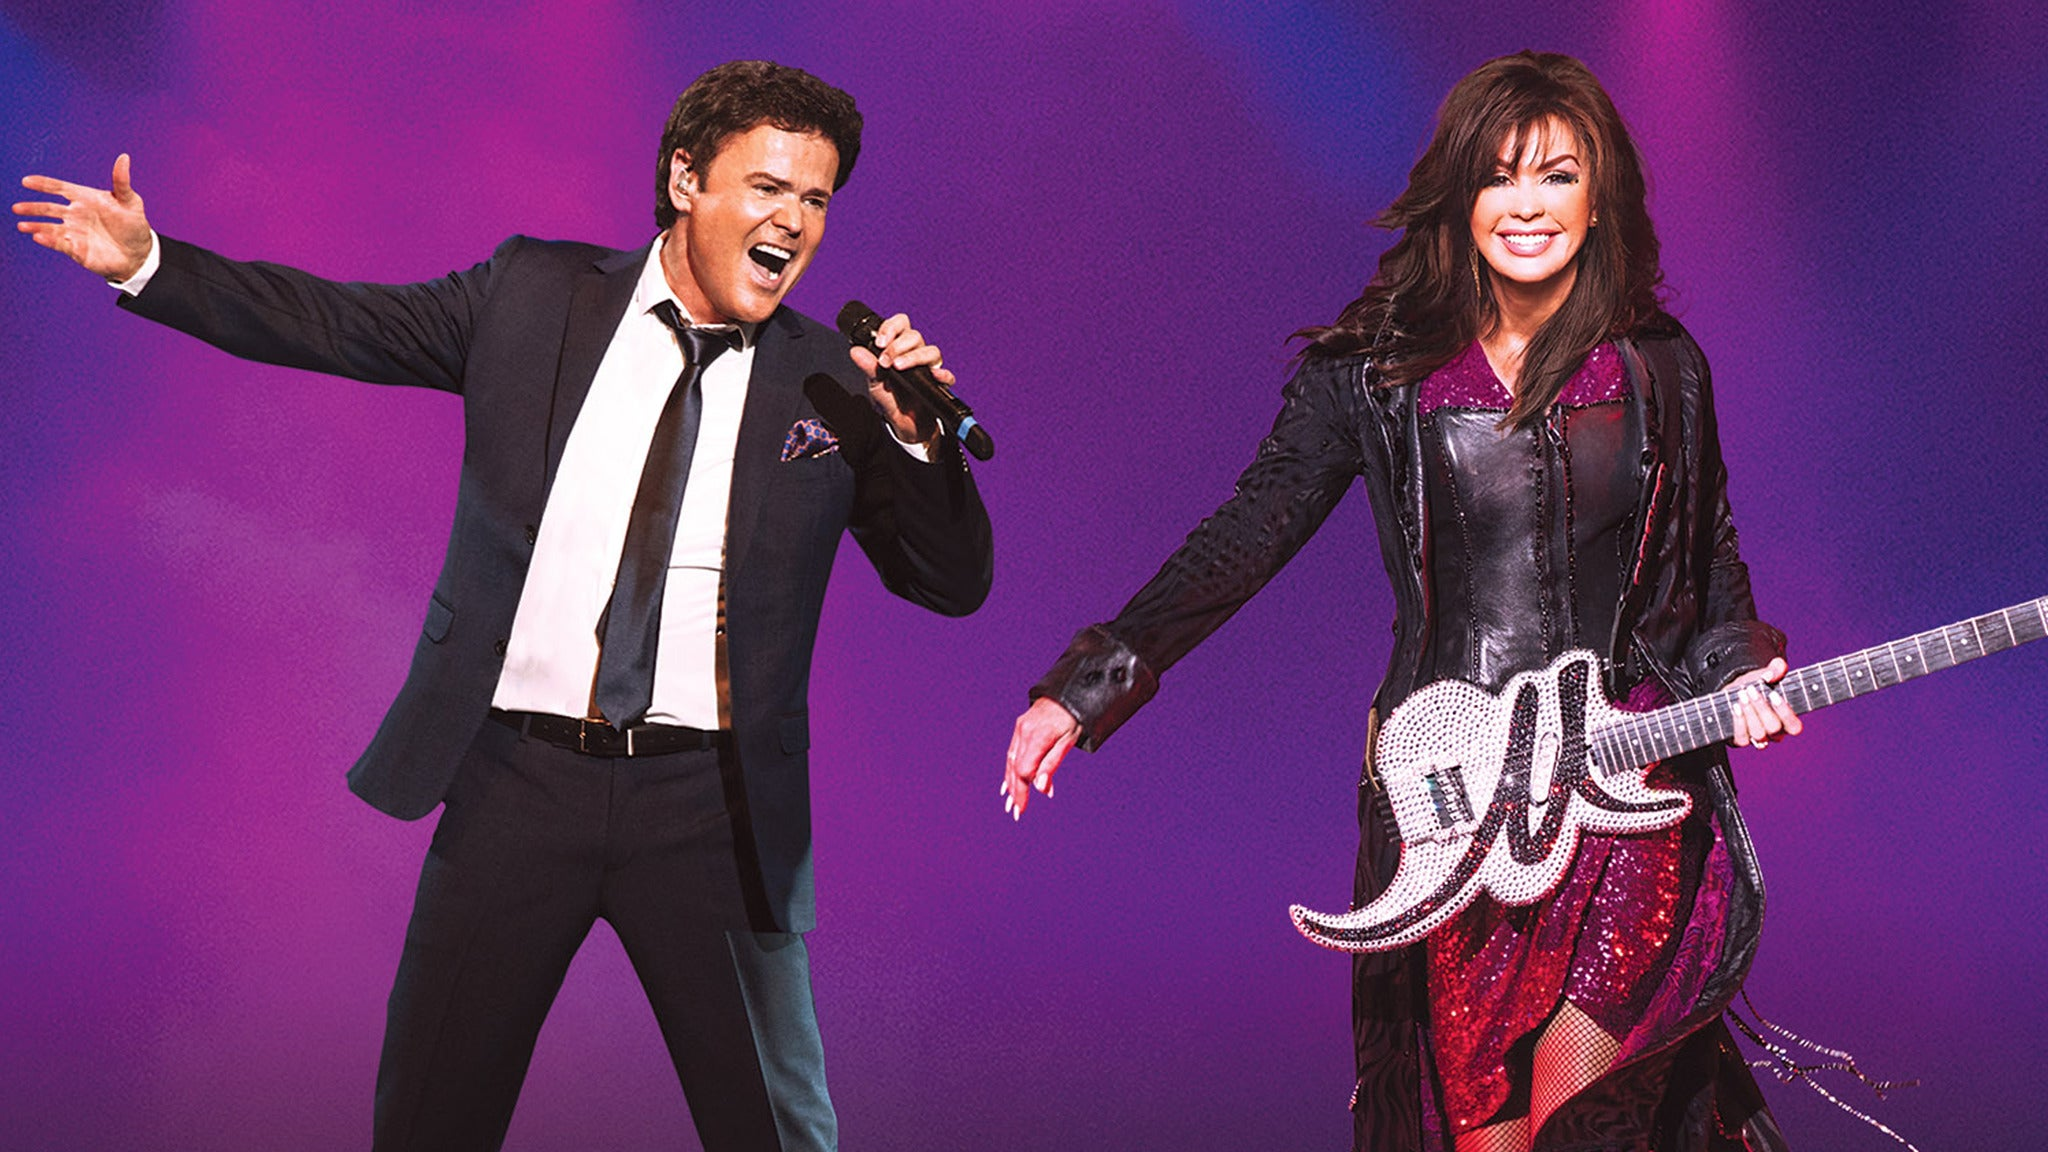 Donny & Marie Summer 2018 Tour at Hard Rock Event Center